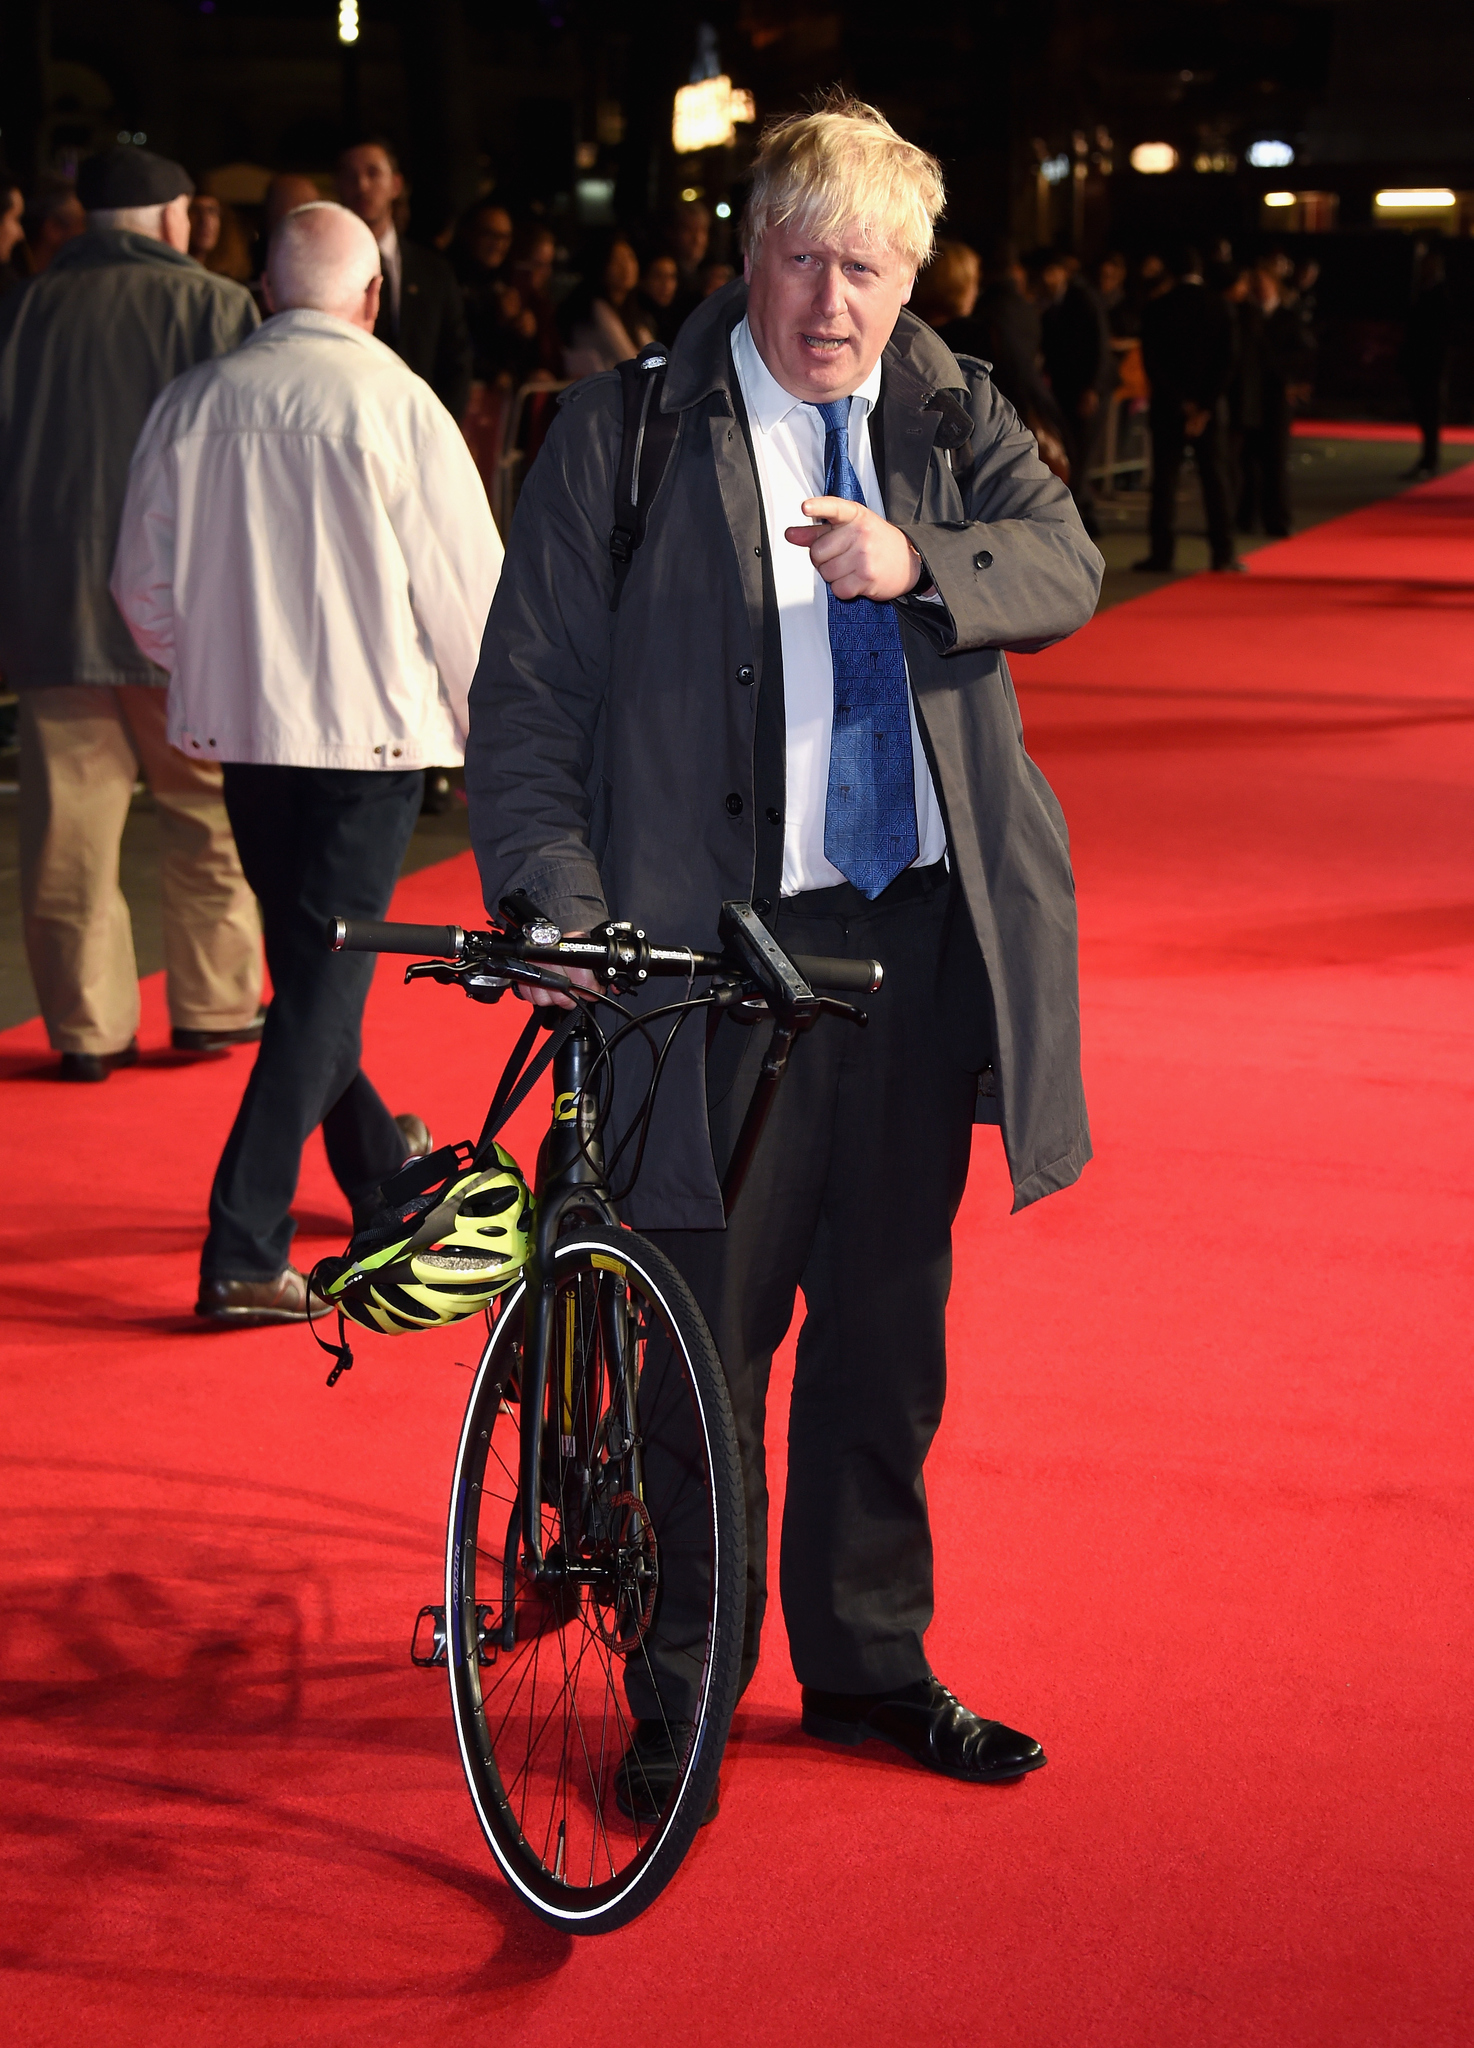 Boris Johnson at an event for Testament of Youth (2014)